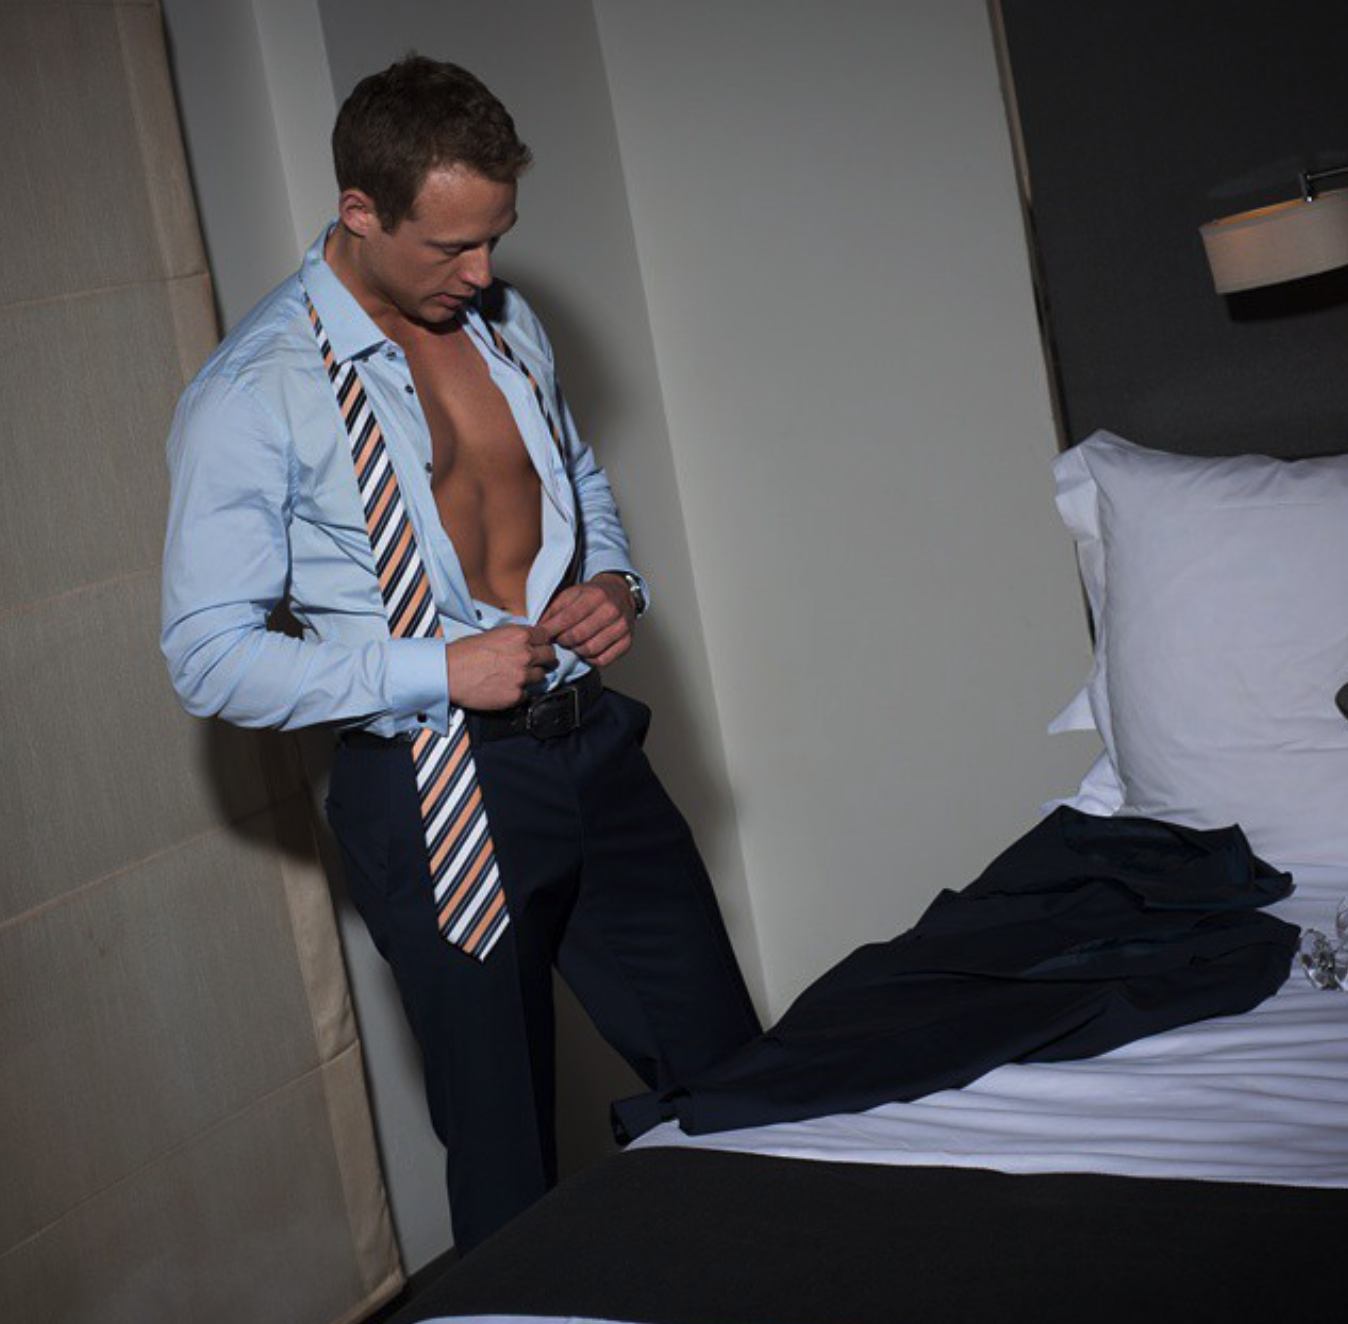 bedroom male escort photos